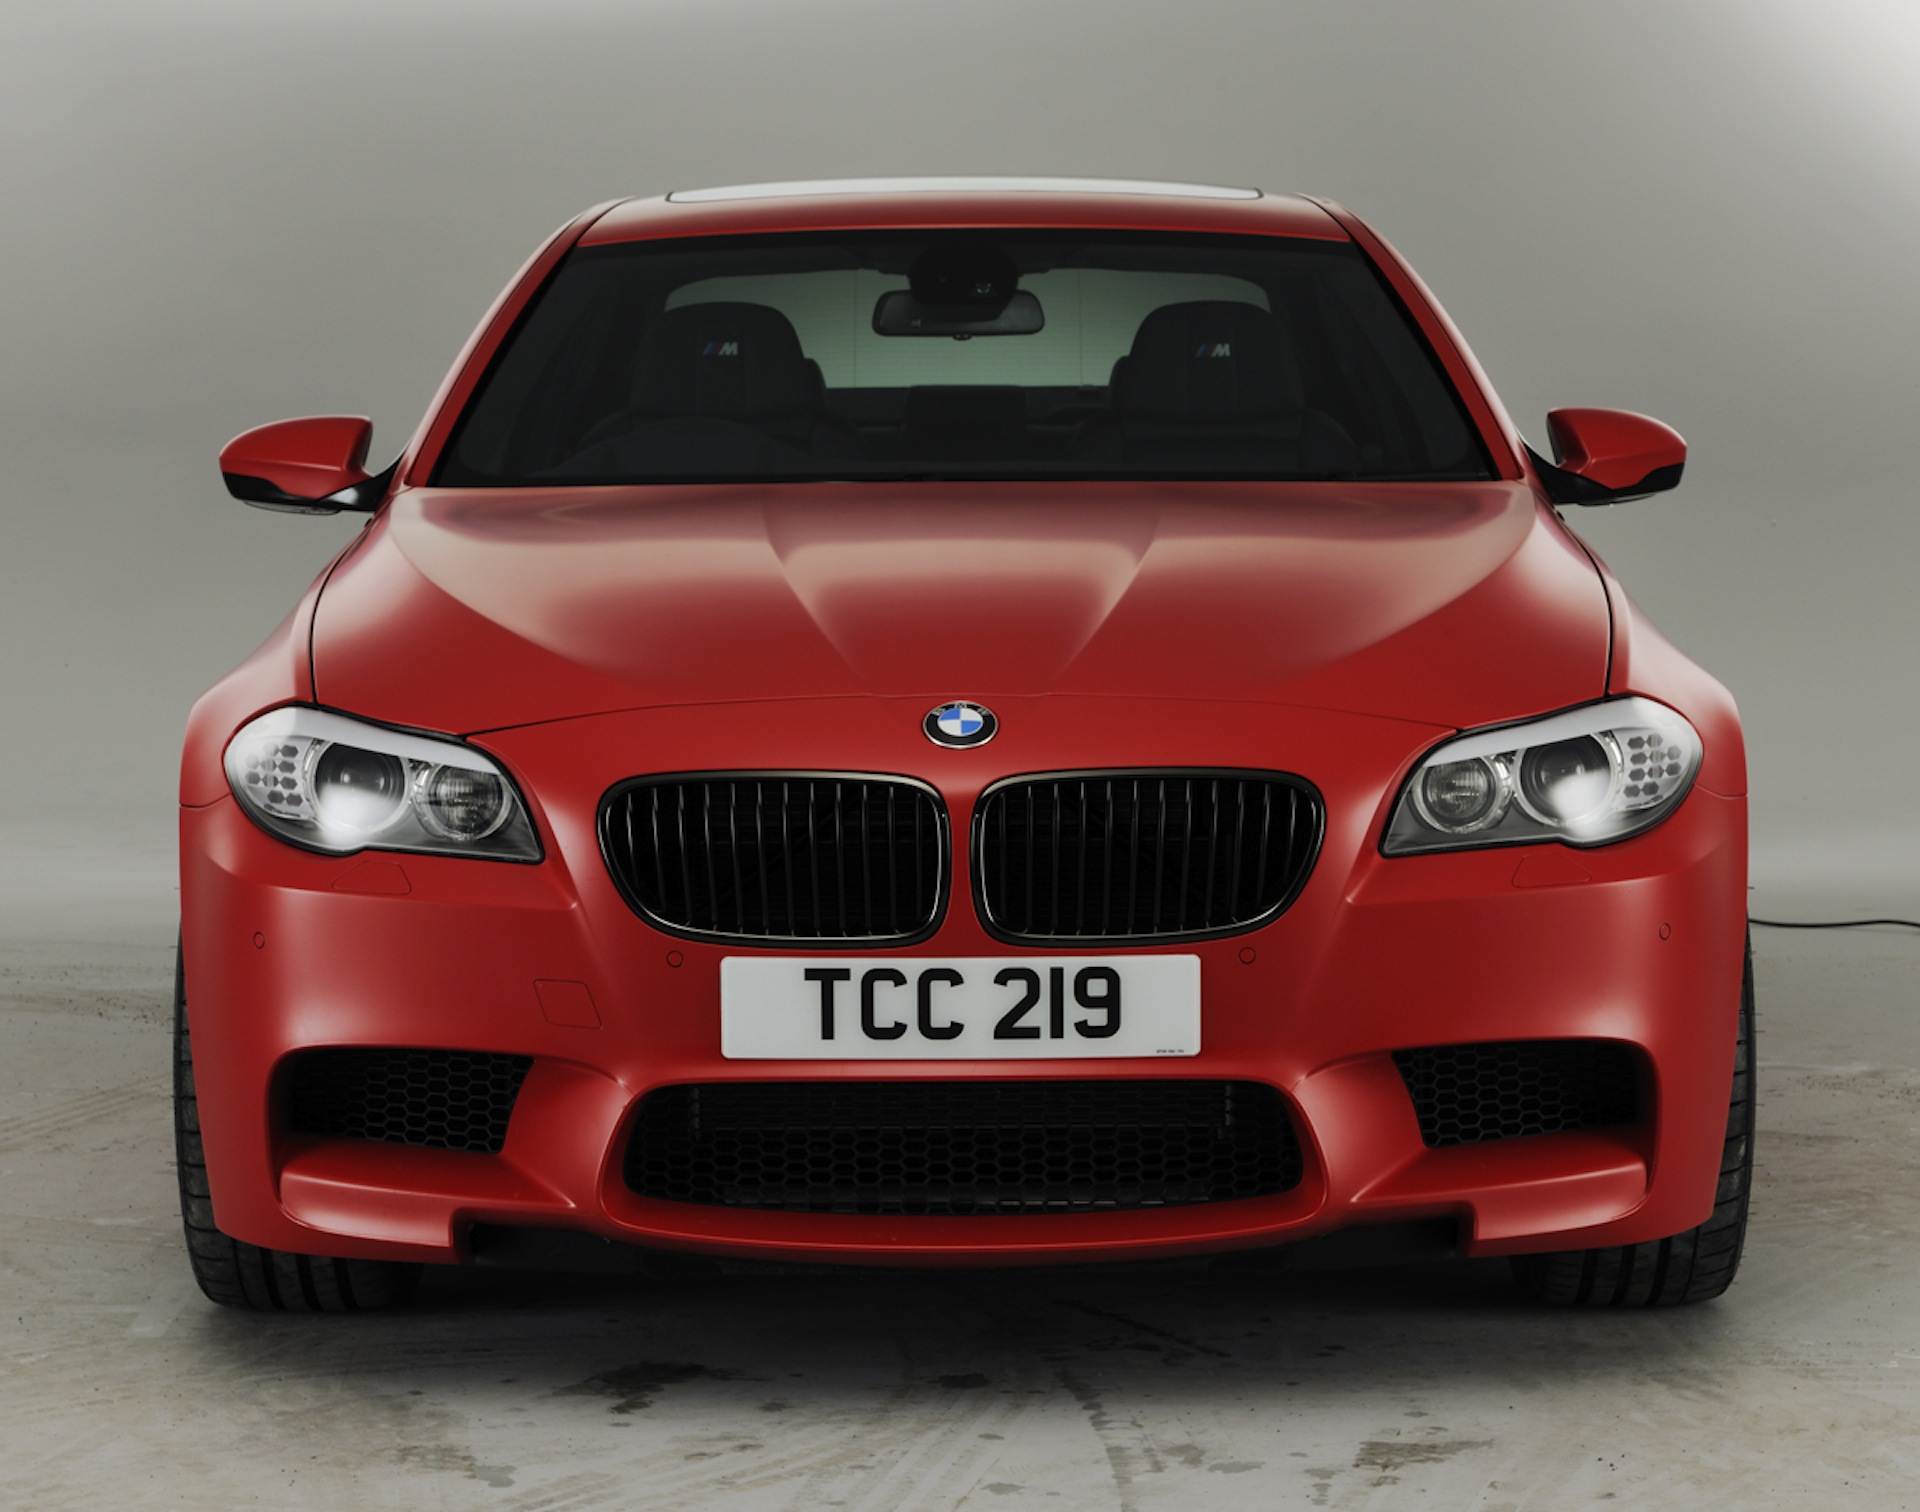 Official Release And Gallery Frozen Bmw M3 And M5 M Performance Editions M5post Bmw M5 Forum